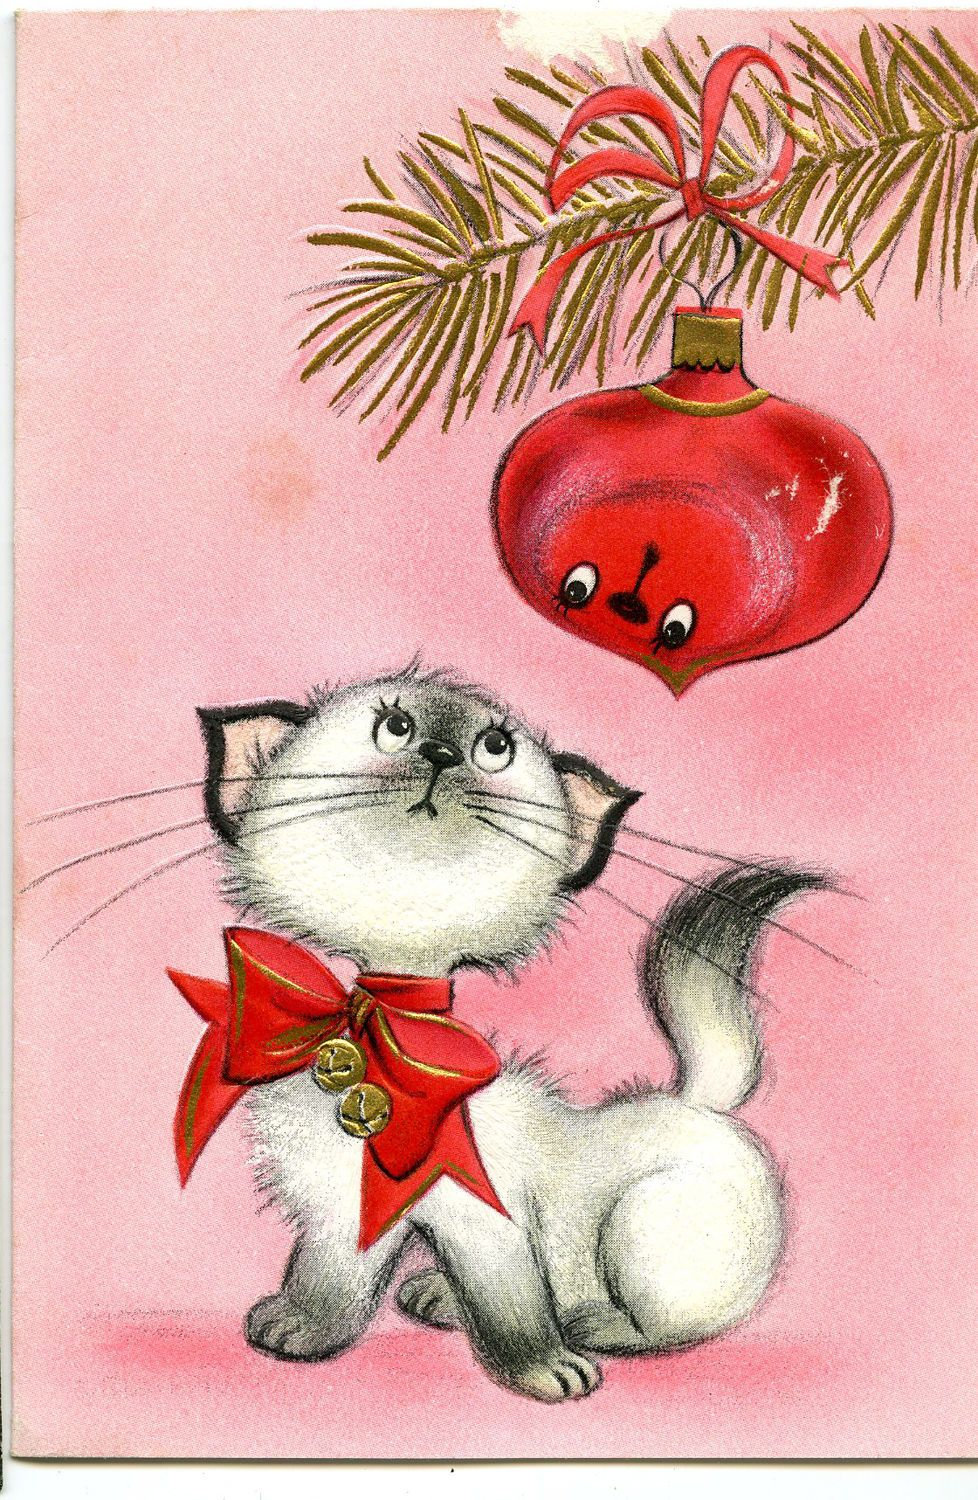 Vintage mid century cute kitten pink christmas card pink christmas vintage mid century cute kitten pink christmas card in collectibles paper vintage greeting cards christmas kristyandbryce Choice Image